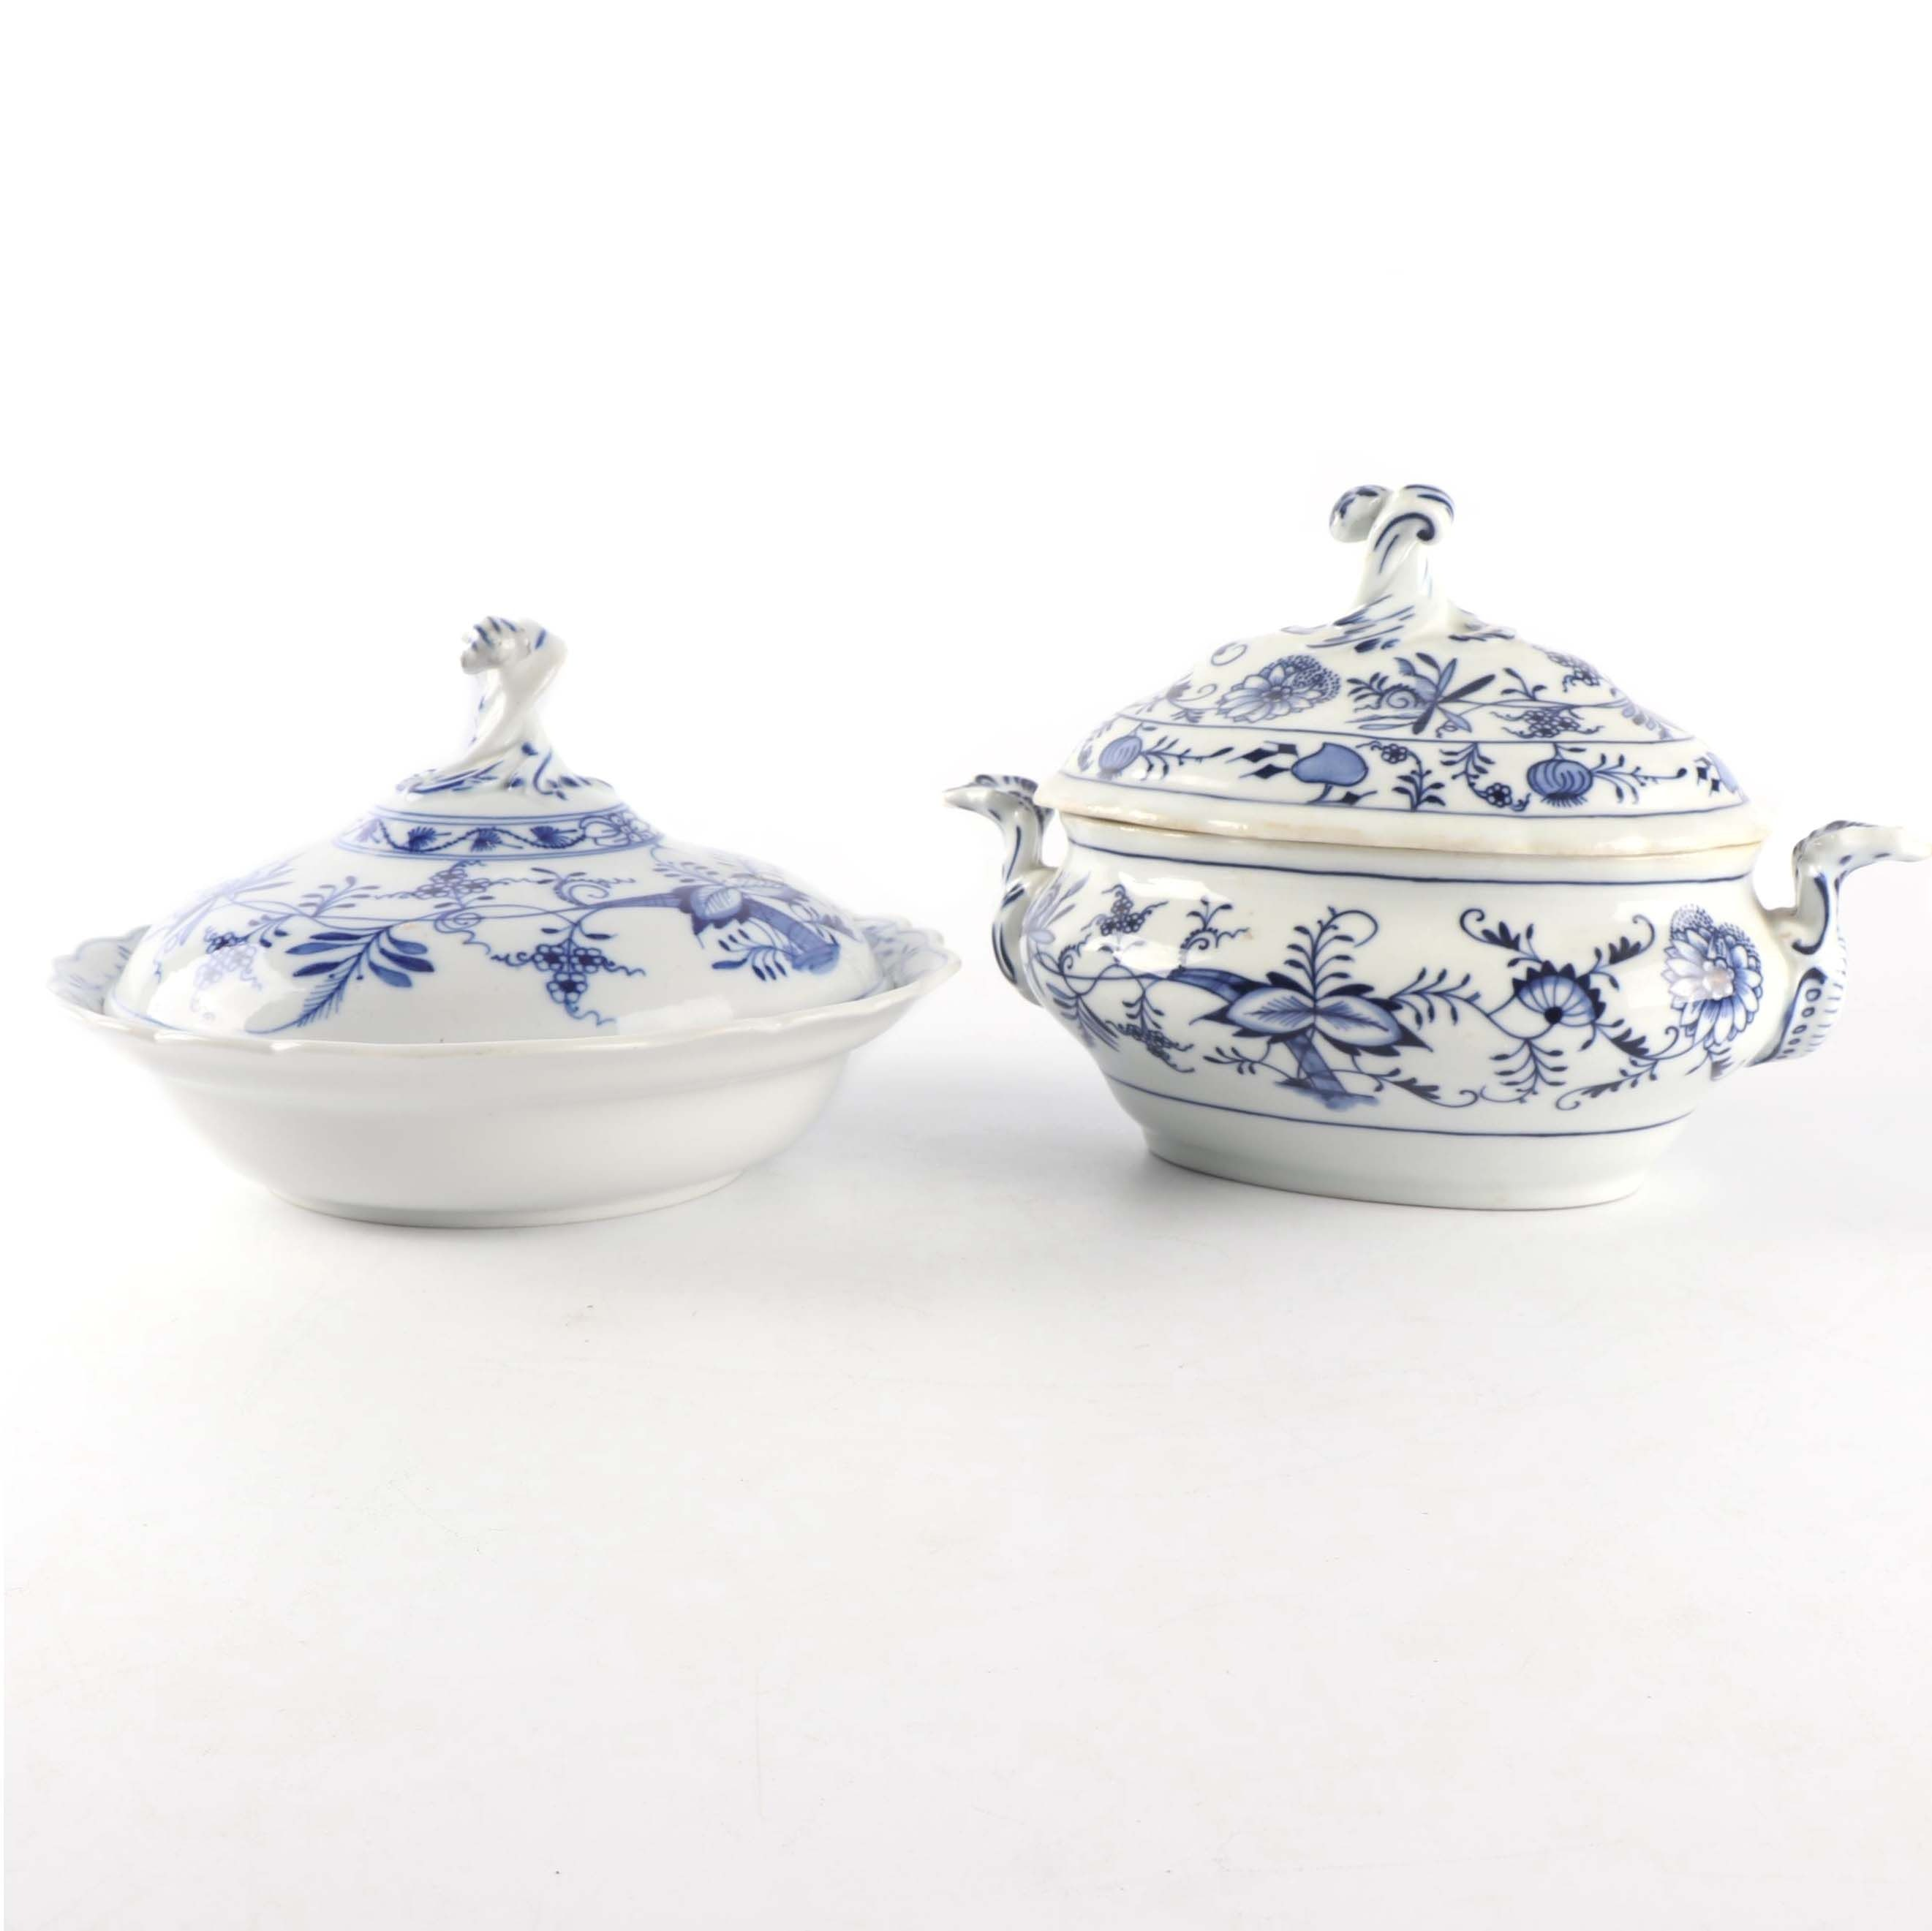 Meissen Porcelain Covered Vegetable Dish and Covered Soup Tureen